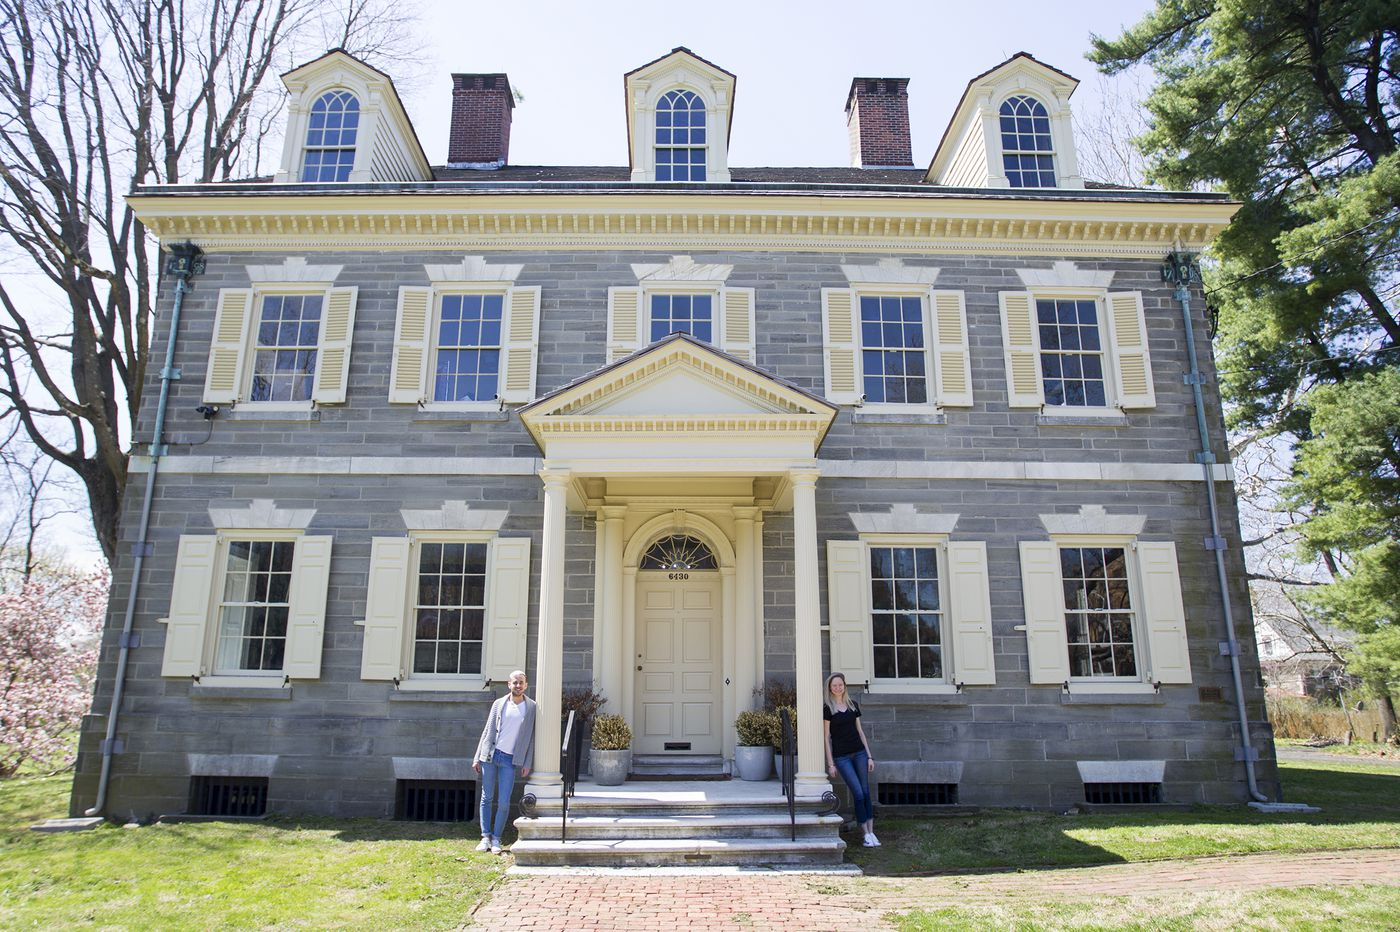 Couple's historic Philly home came with an unusual caveat: Annual battle reenactments | We the People